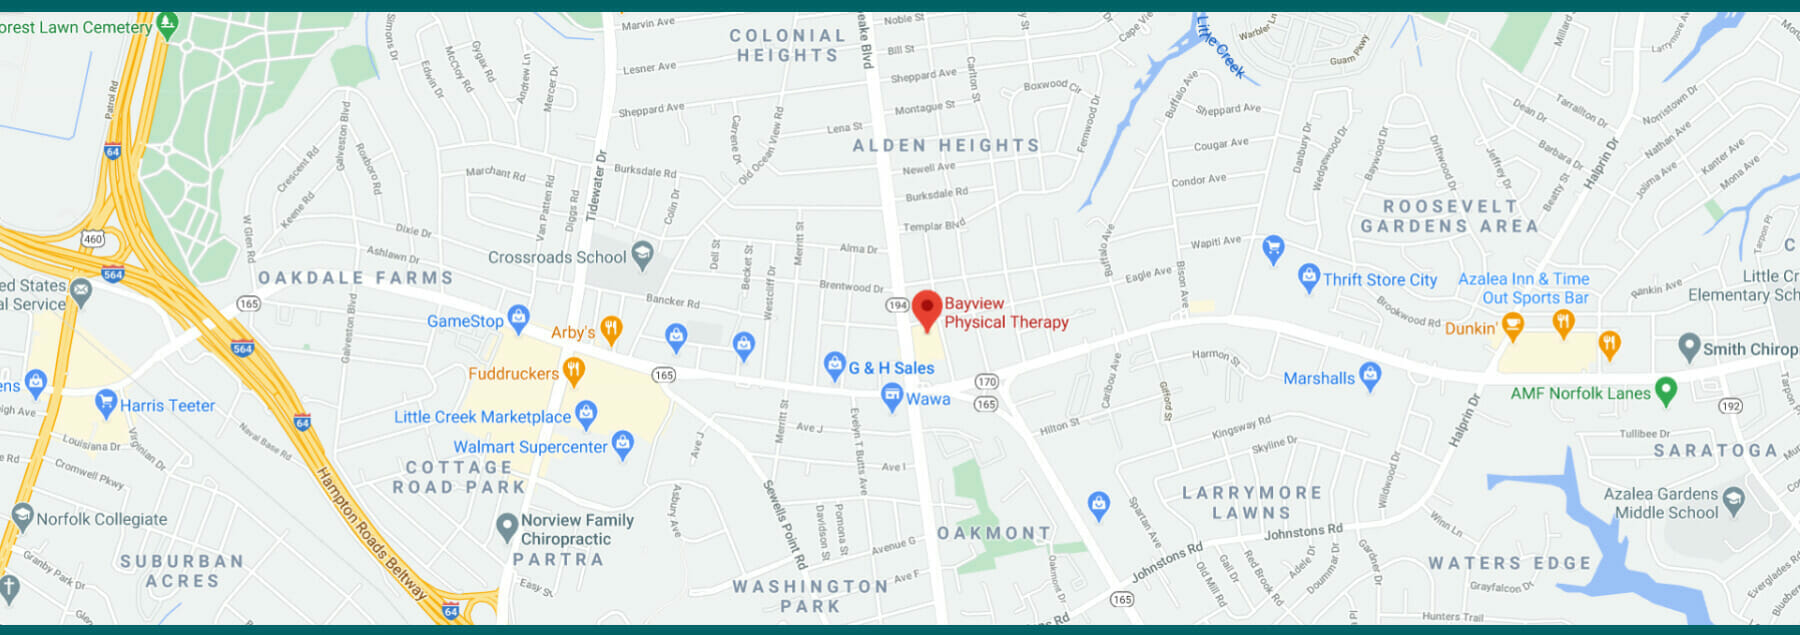 Visit Bayview Physical Therapy Map in Norfolk, Virginia